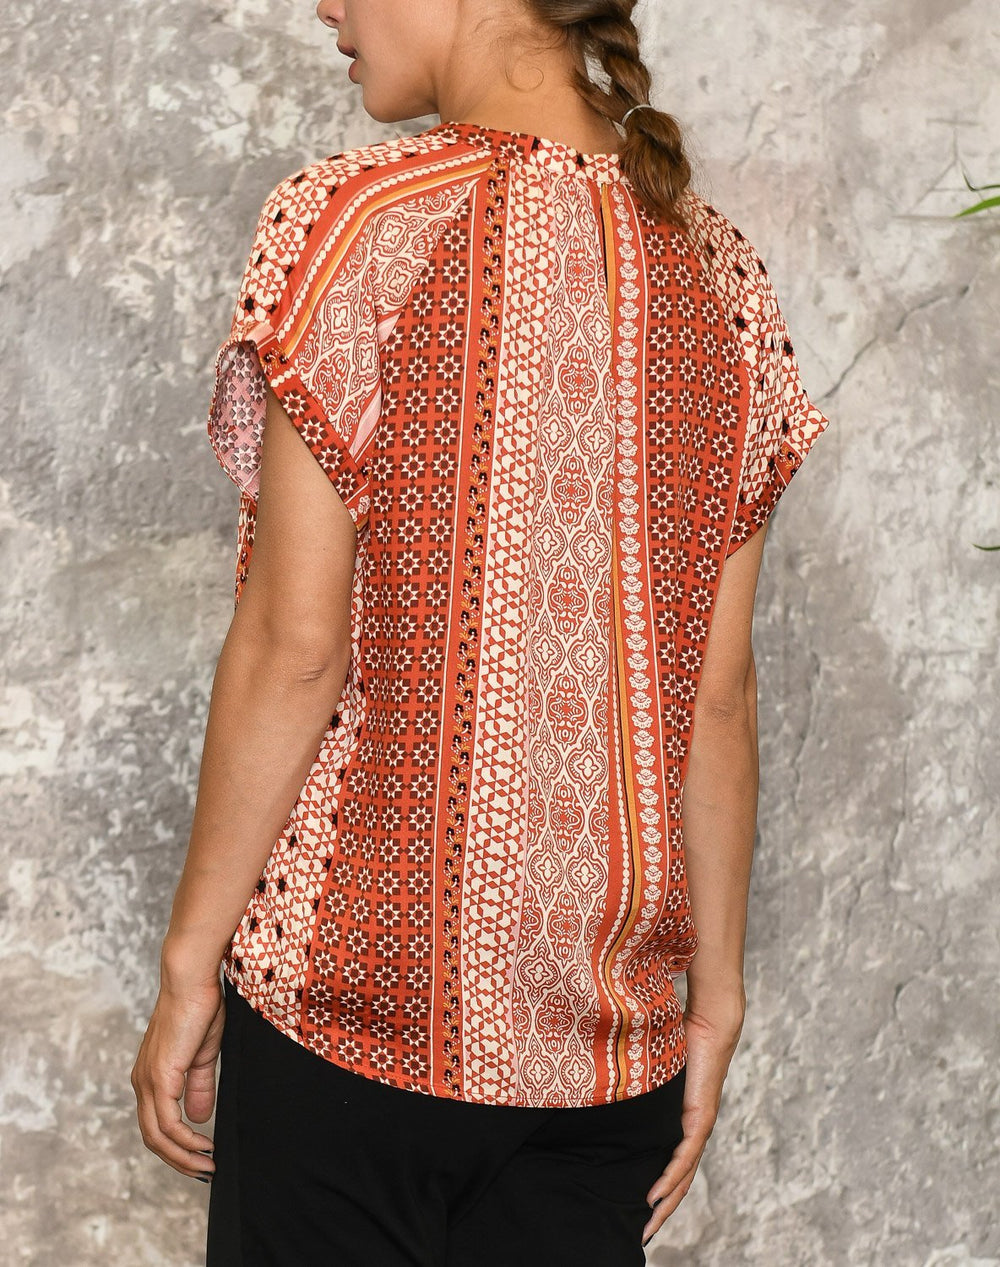 Culture CUzalan bluse mecca orange - Online-Mode